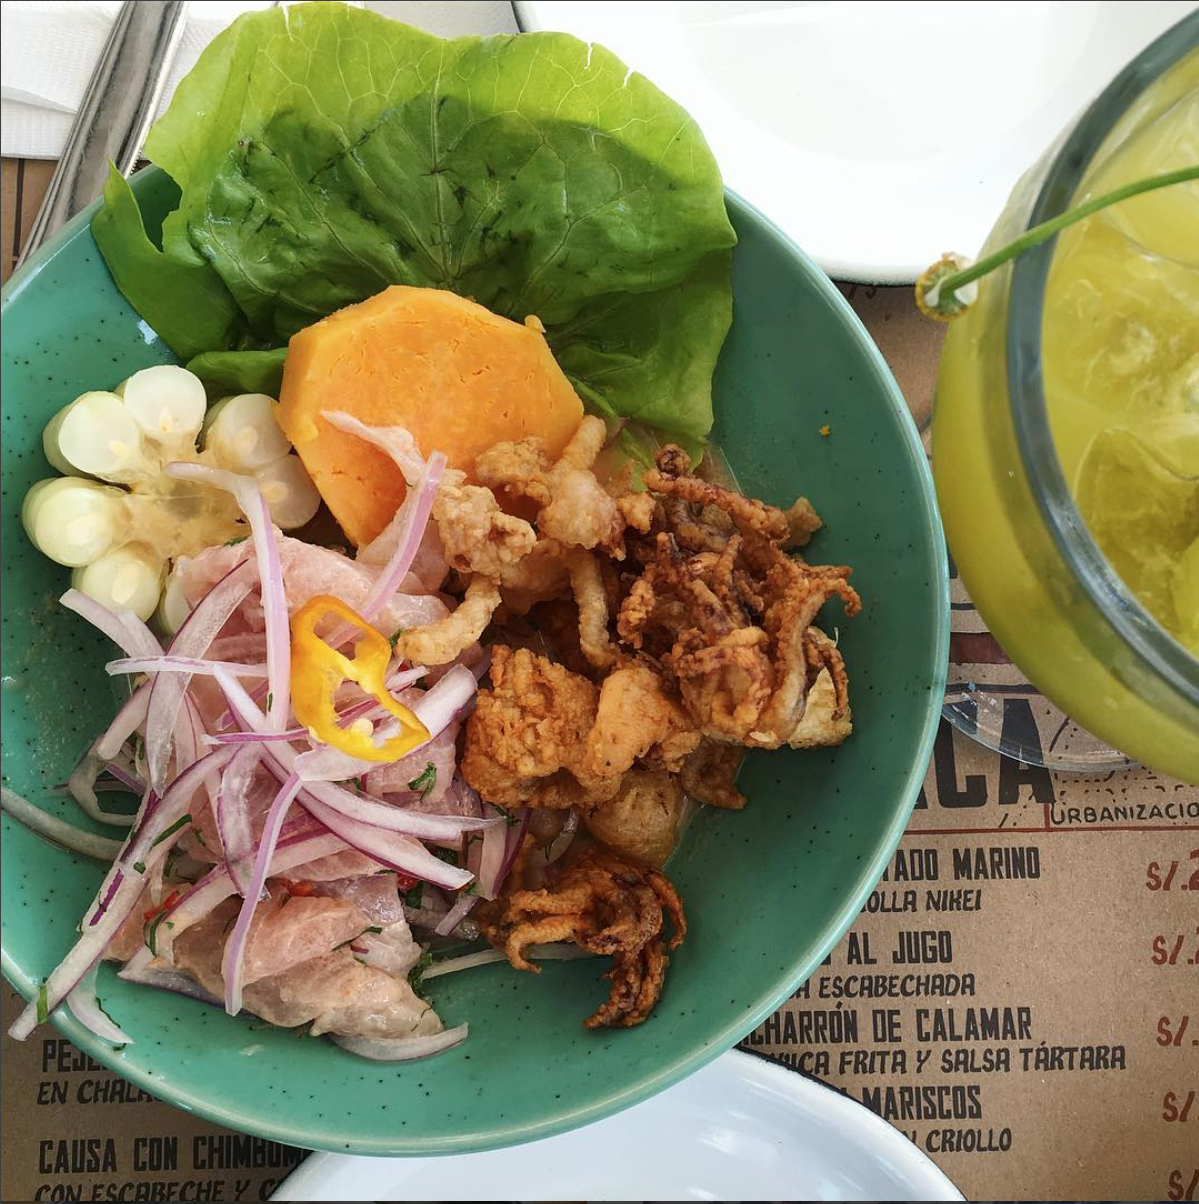 The Frugal Traveler was a big fan of the food in Lima, Peru especially the ceviche! Photo credit: Lucas Peterson